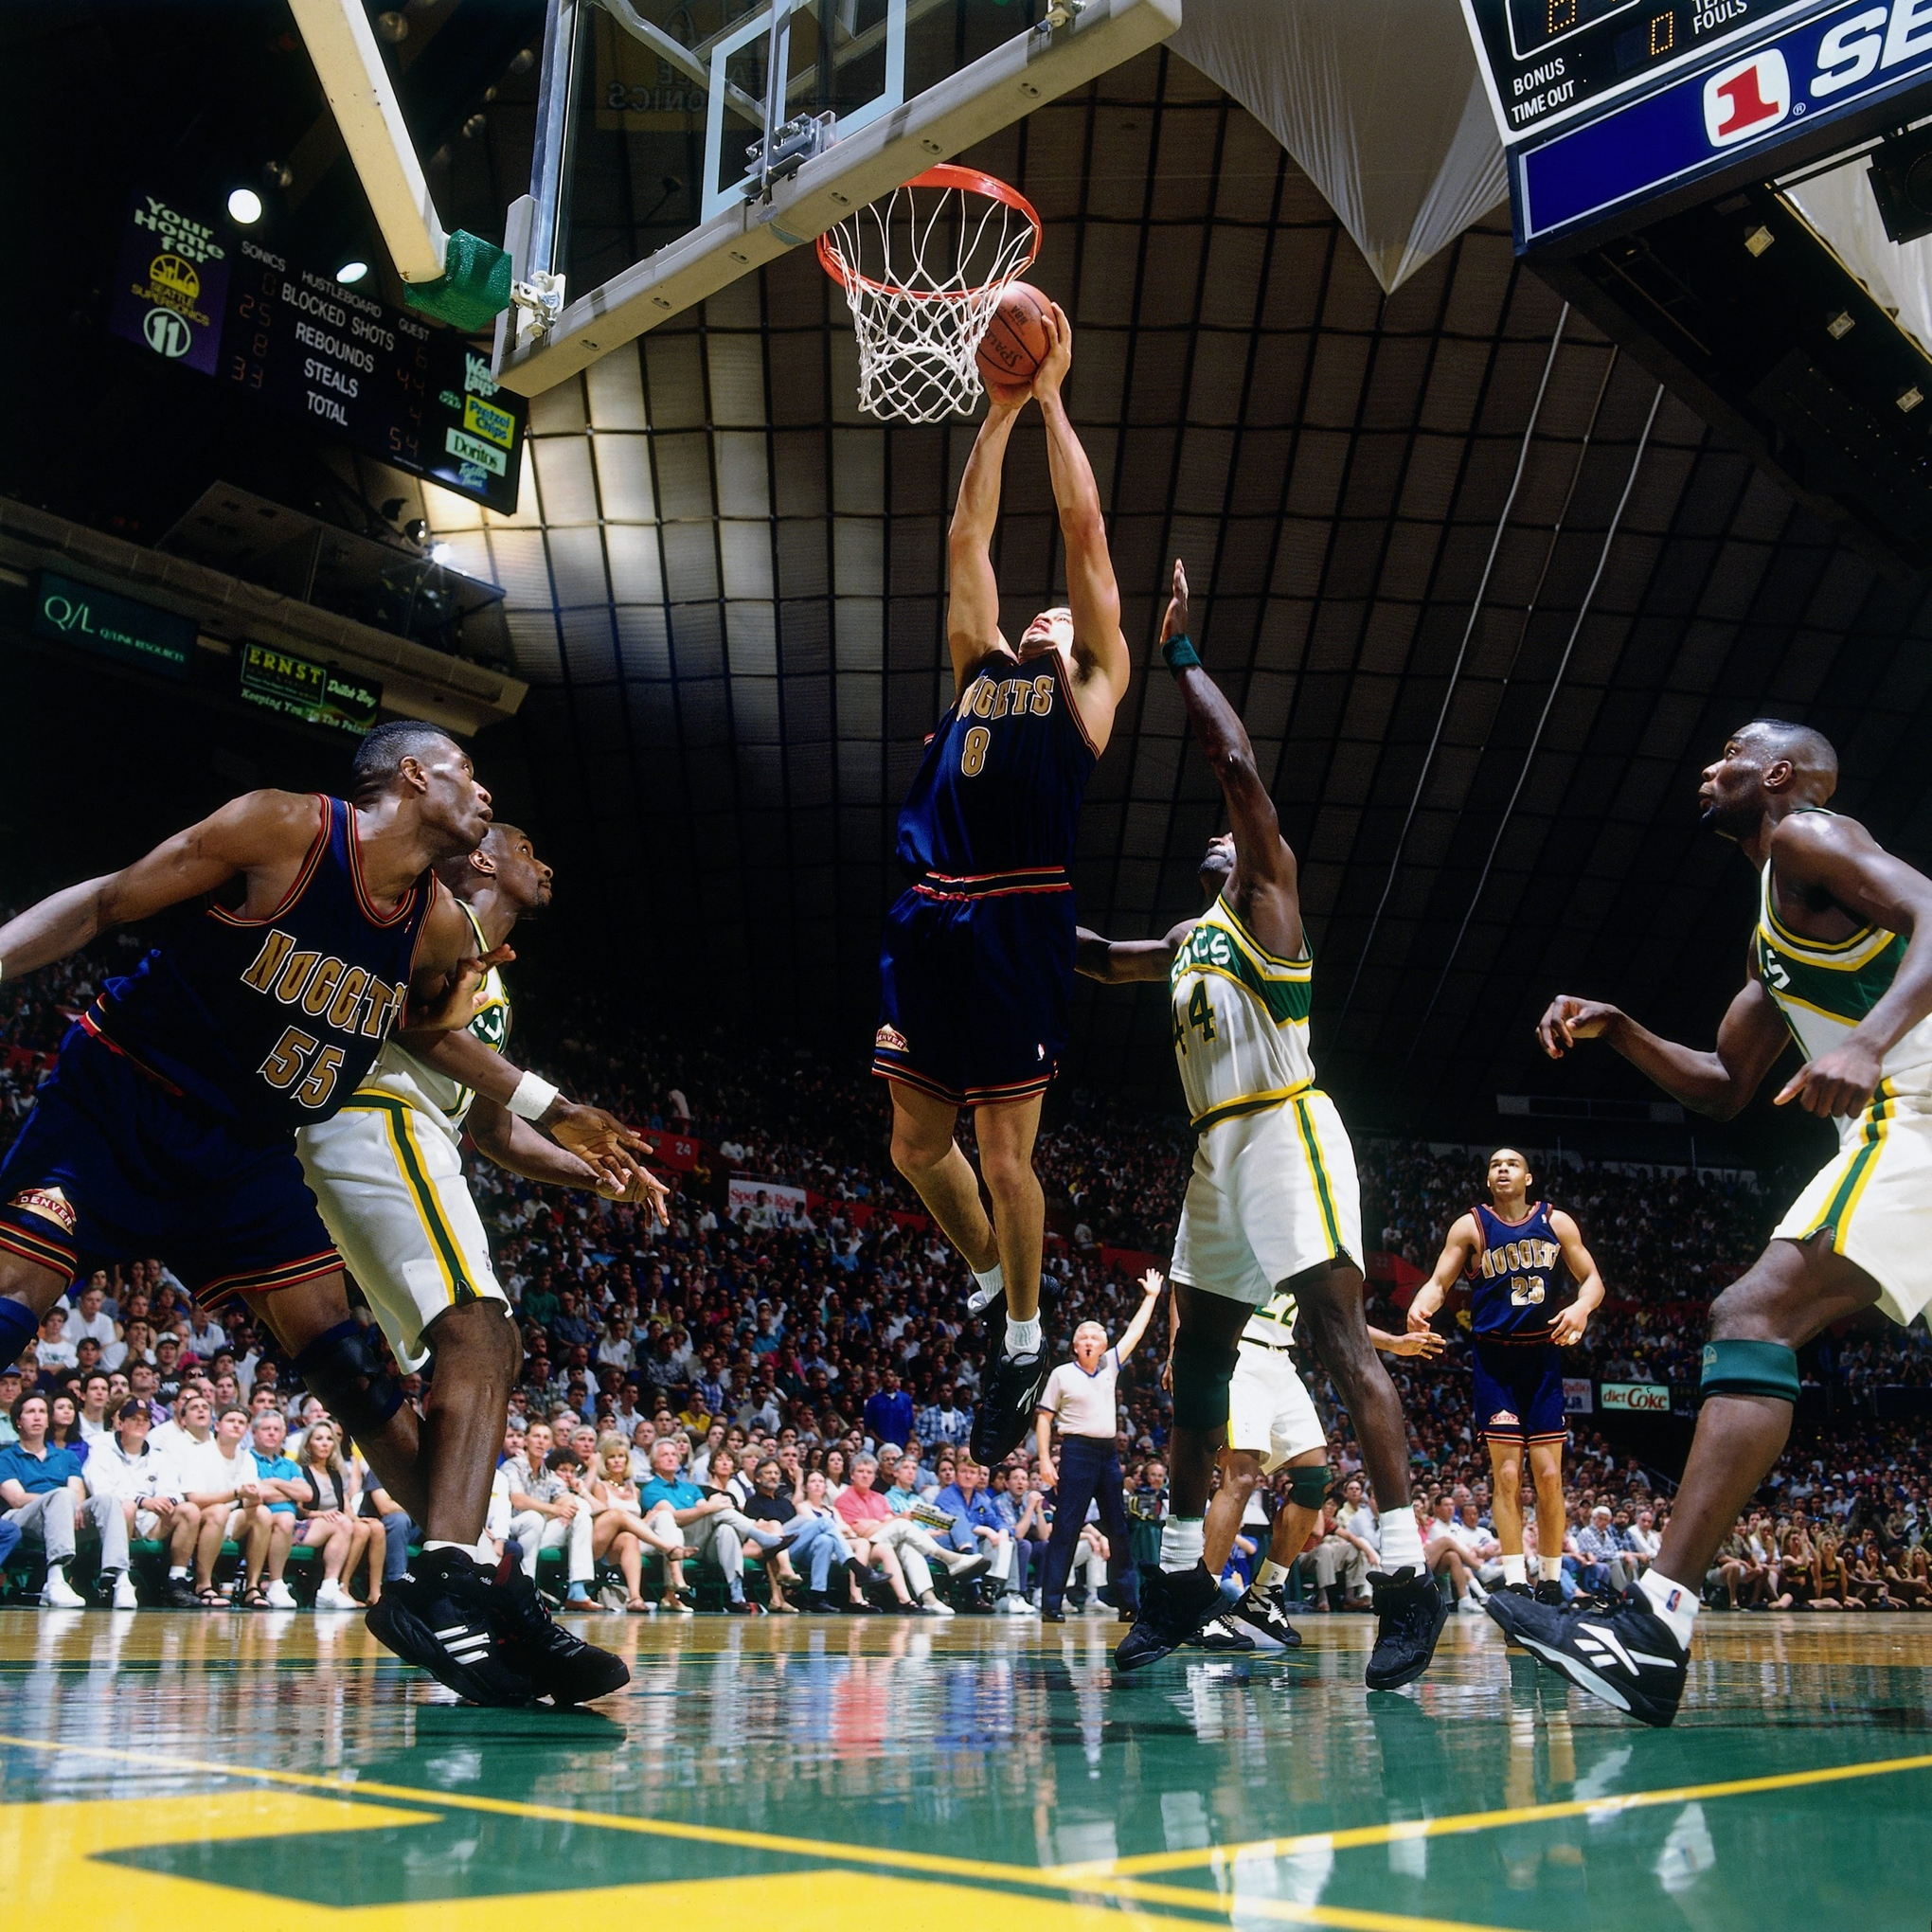 Denver Nuggets Sb Nation: Reign Of Terror: Shawn Kemp, Gary Payton And The Rise Of